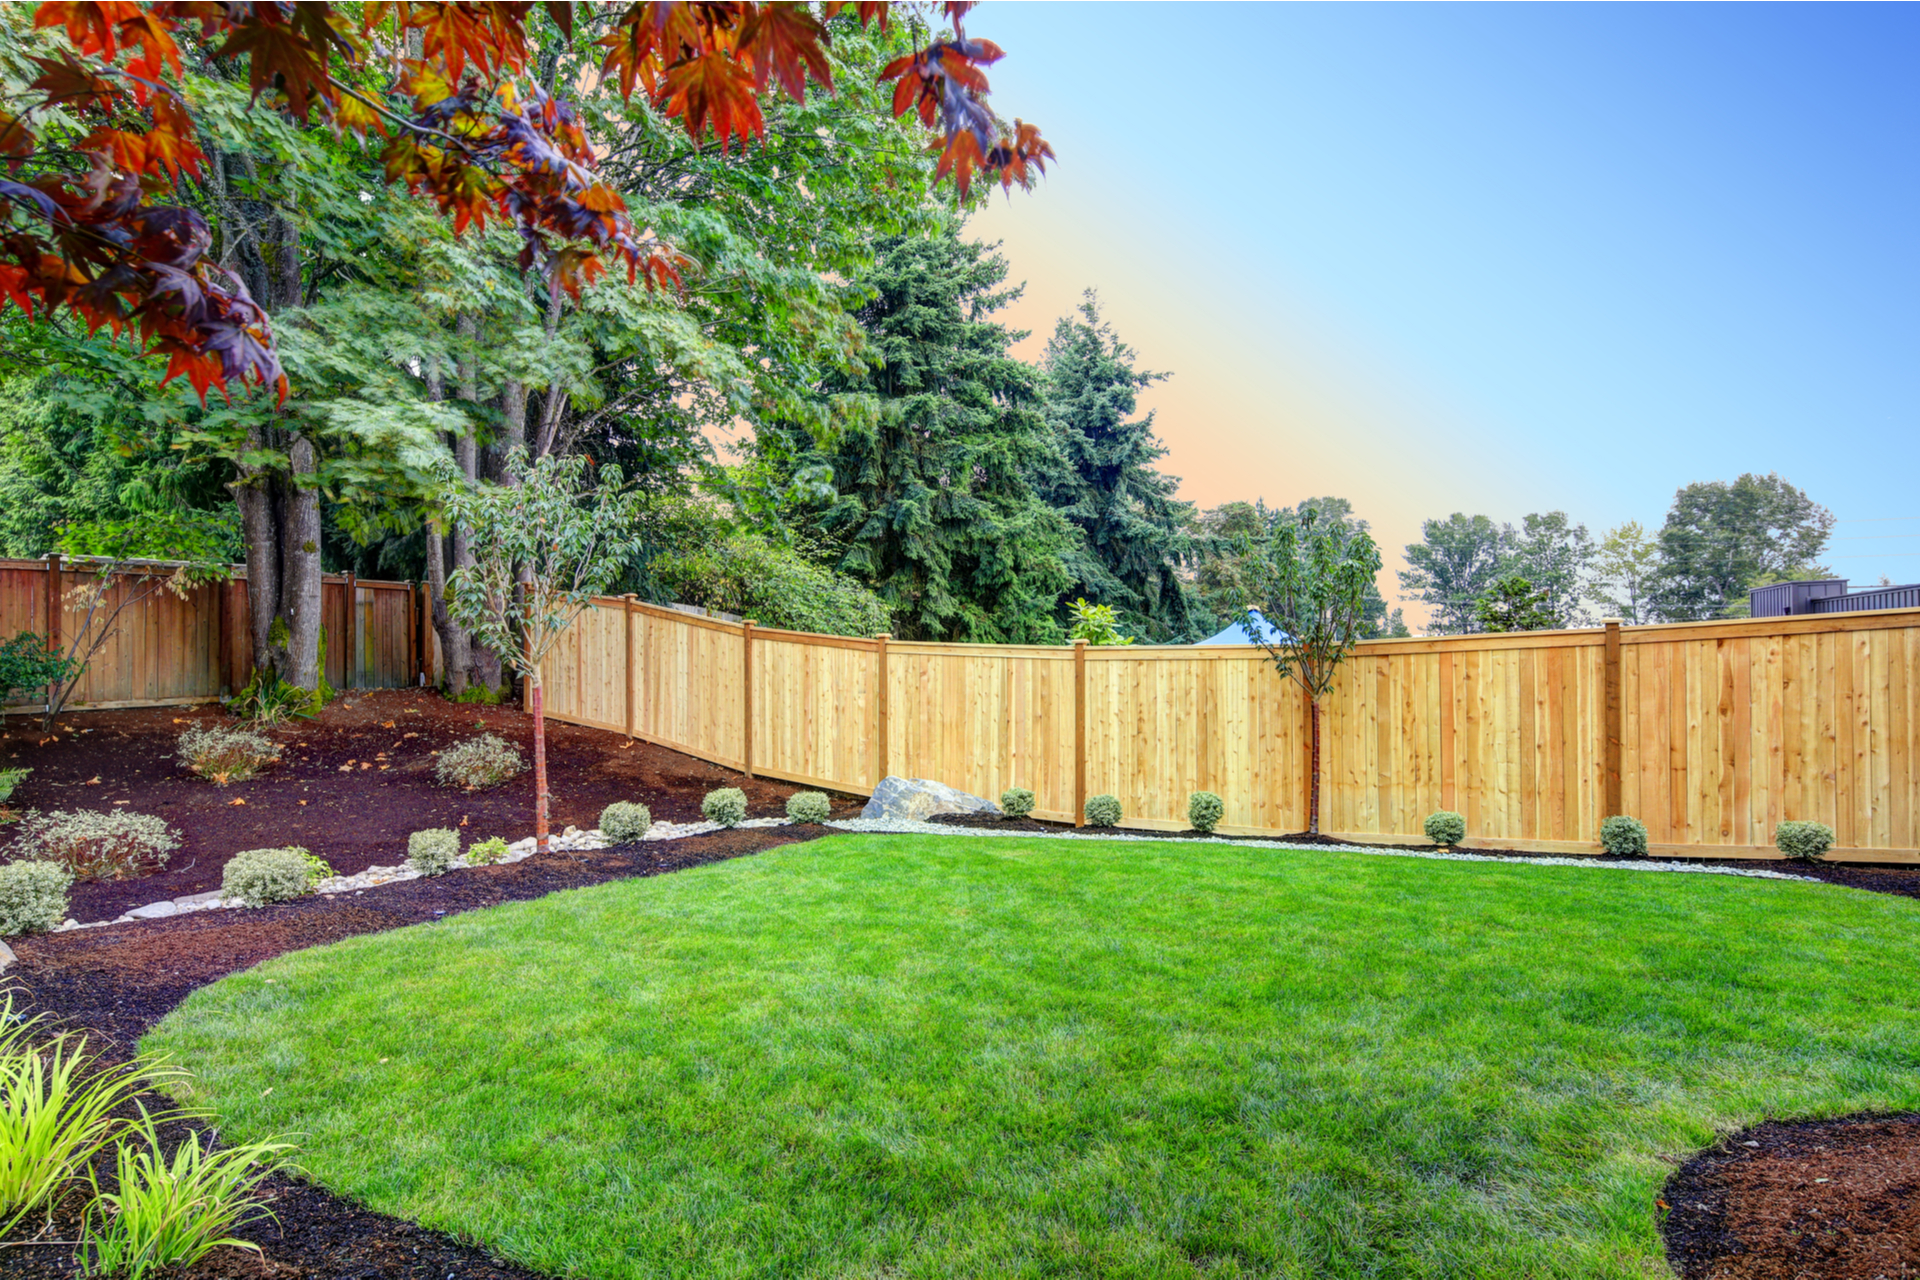 View of an attractive backyard with new planting beds and well kept lawn.